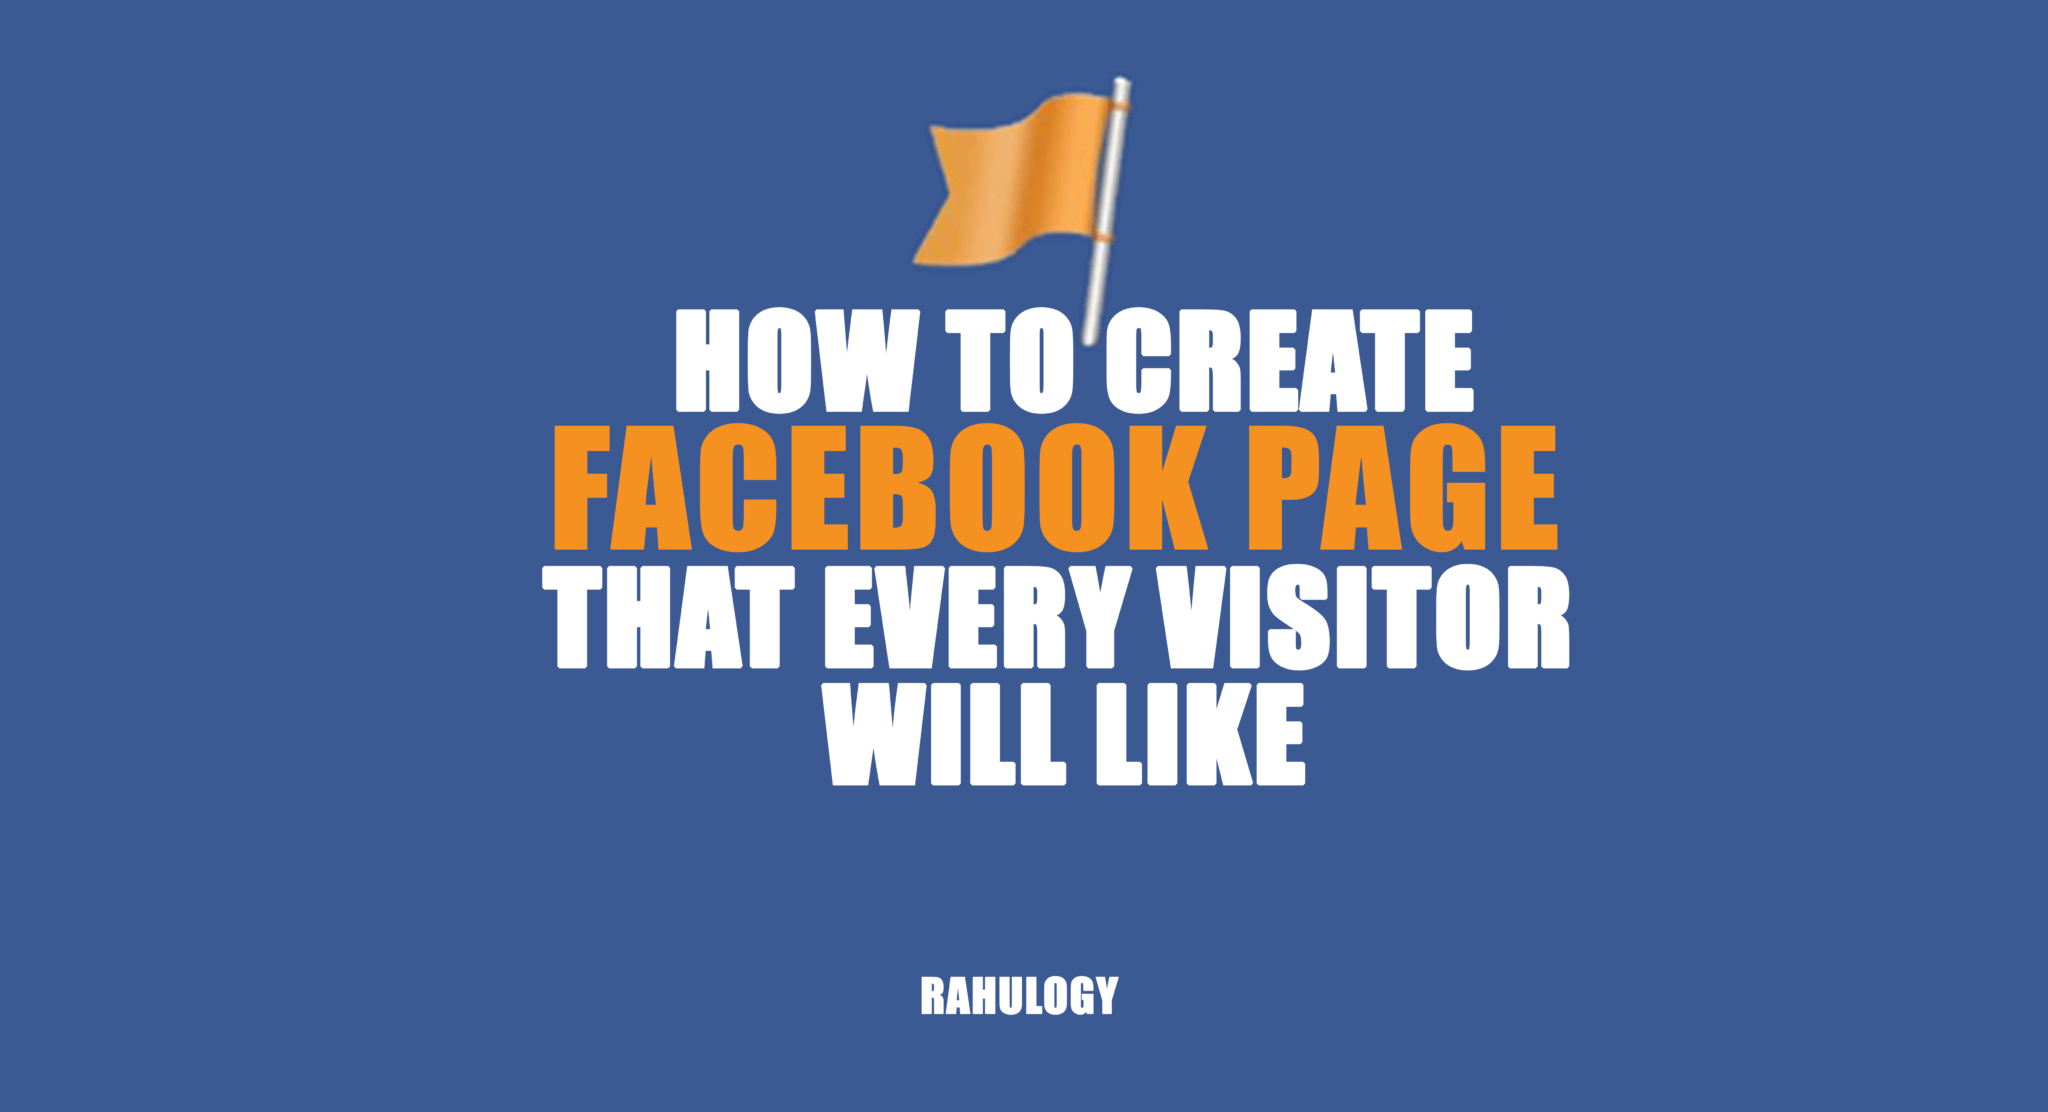 How to create Facebook page that every visitor will like